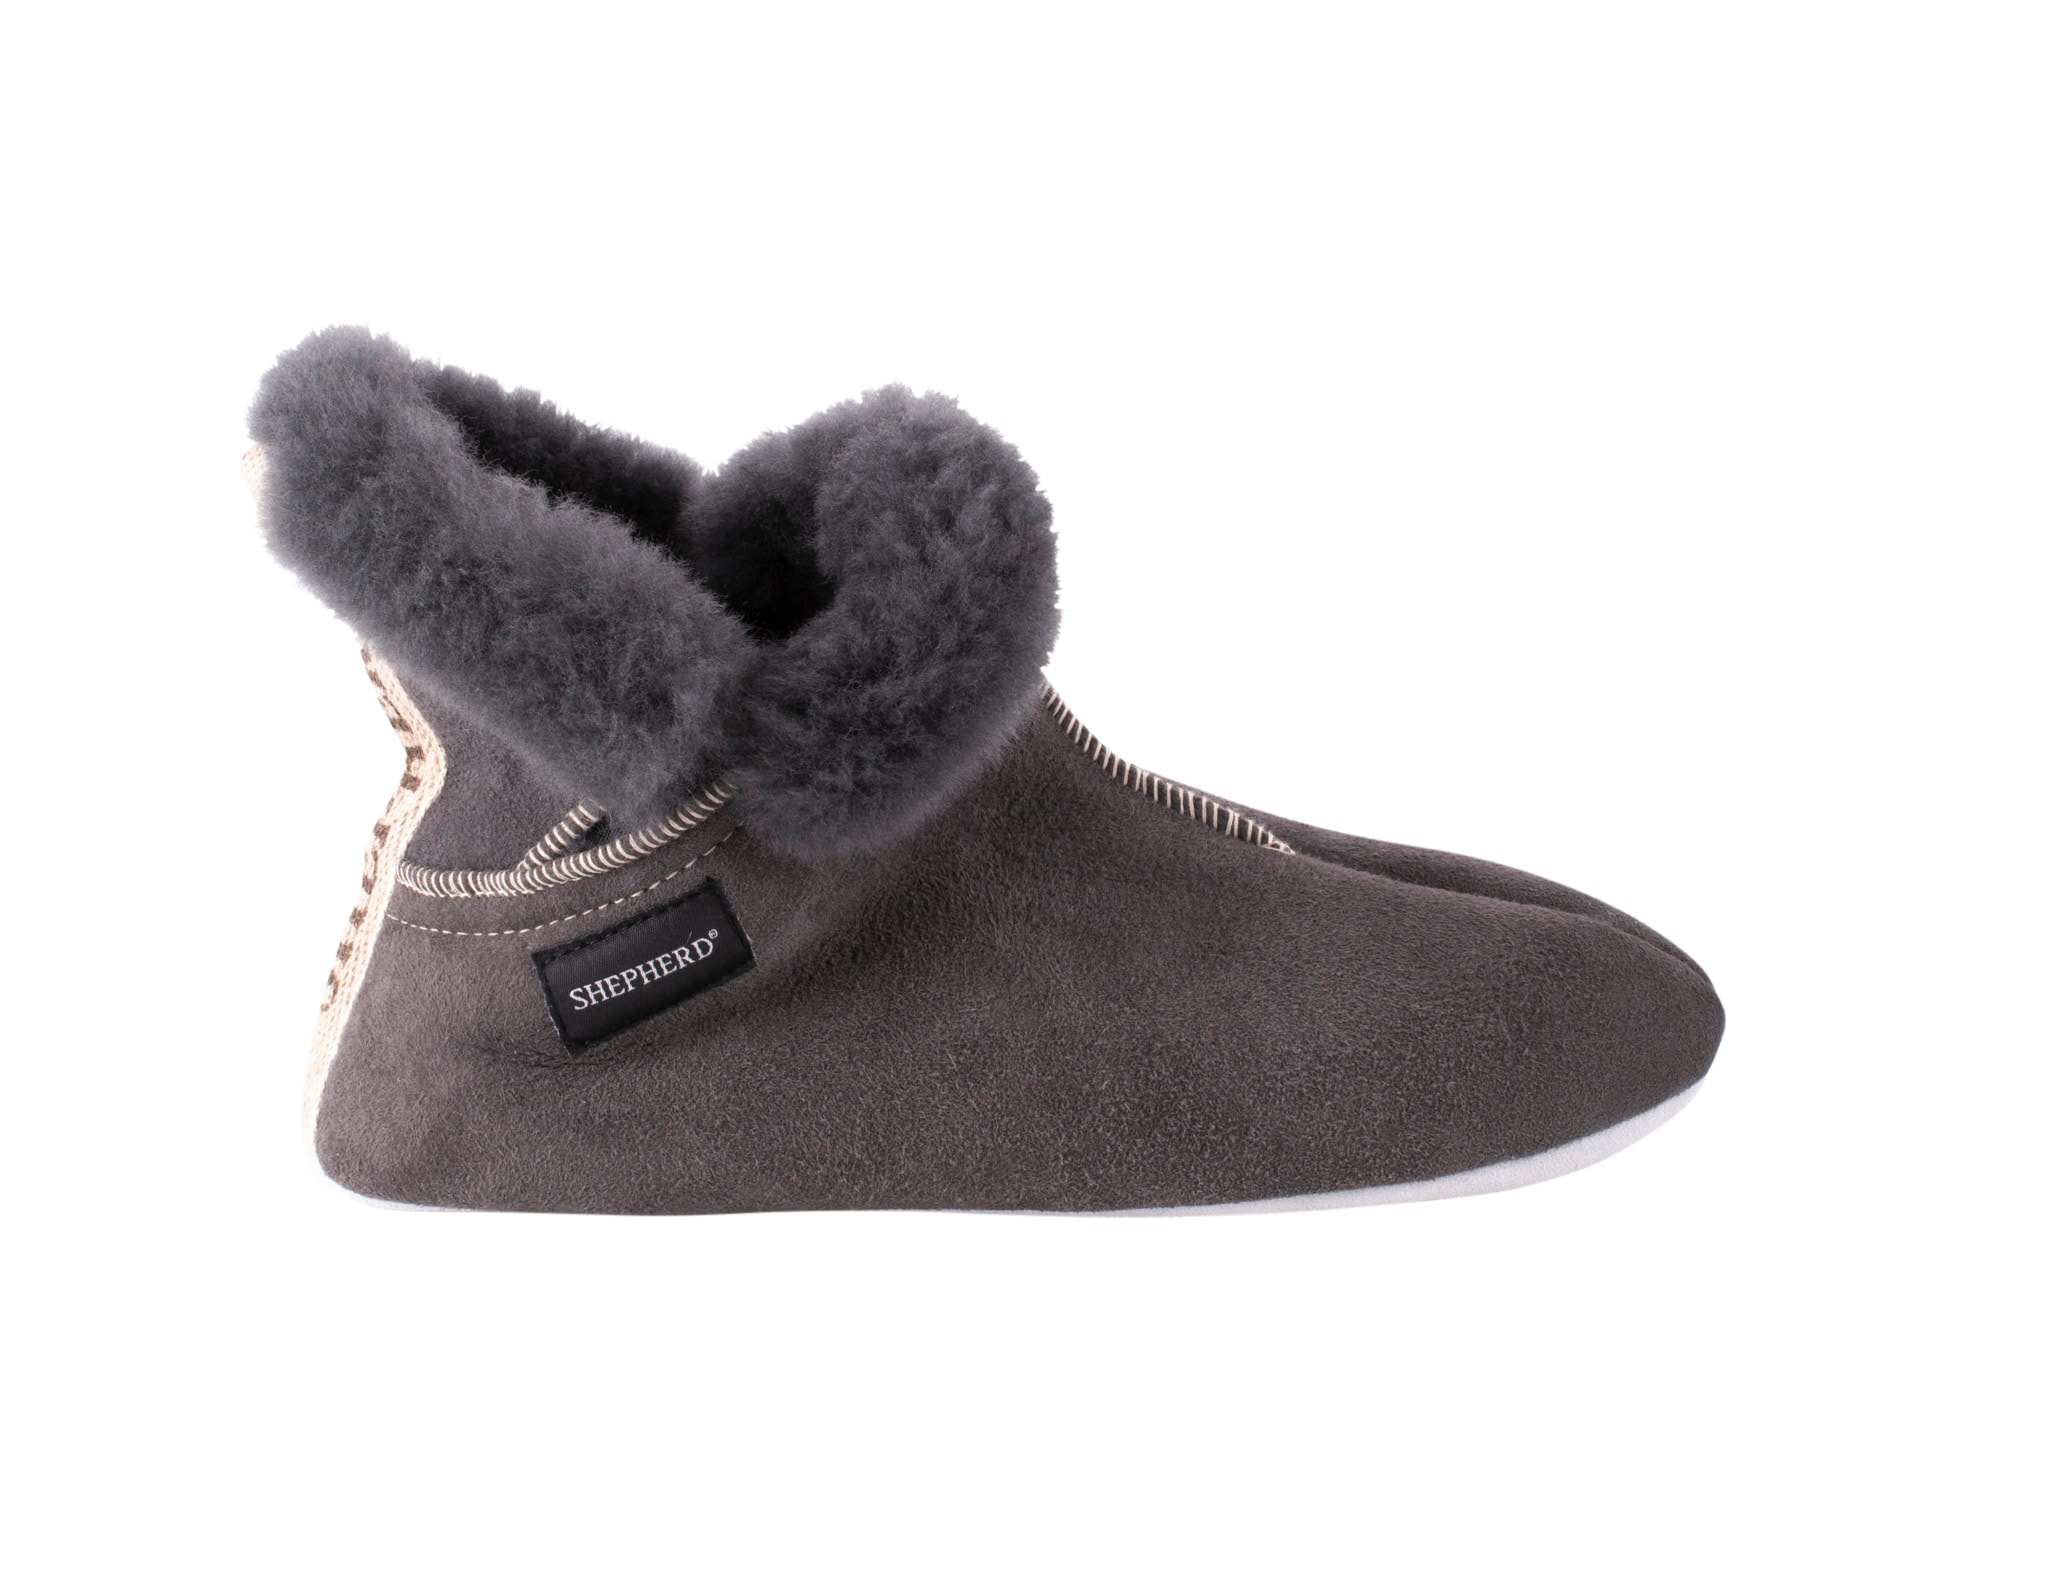 Mariette sheepskin slippers